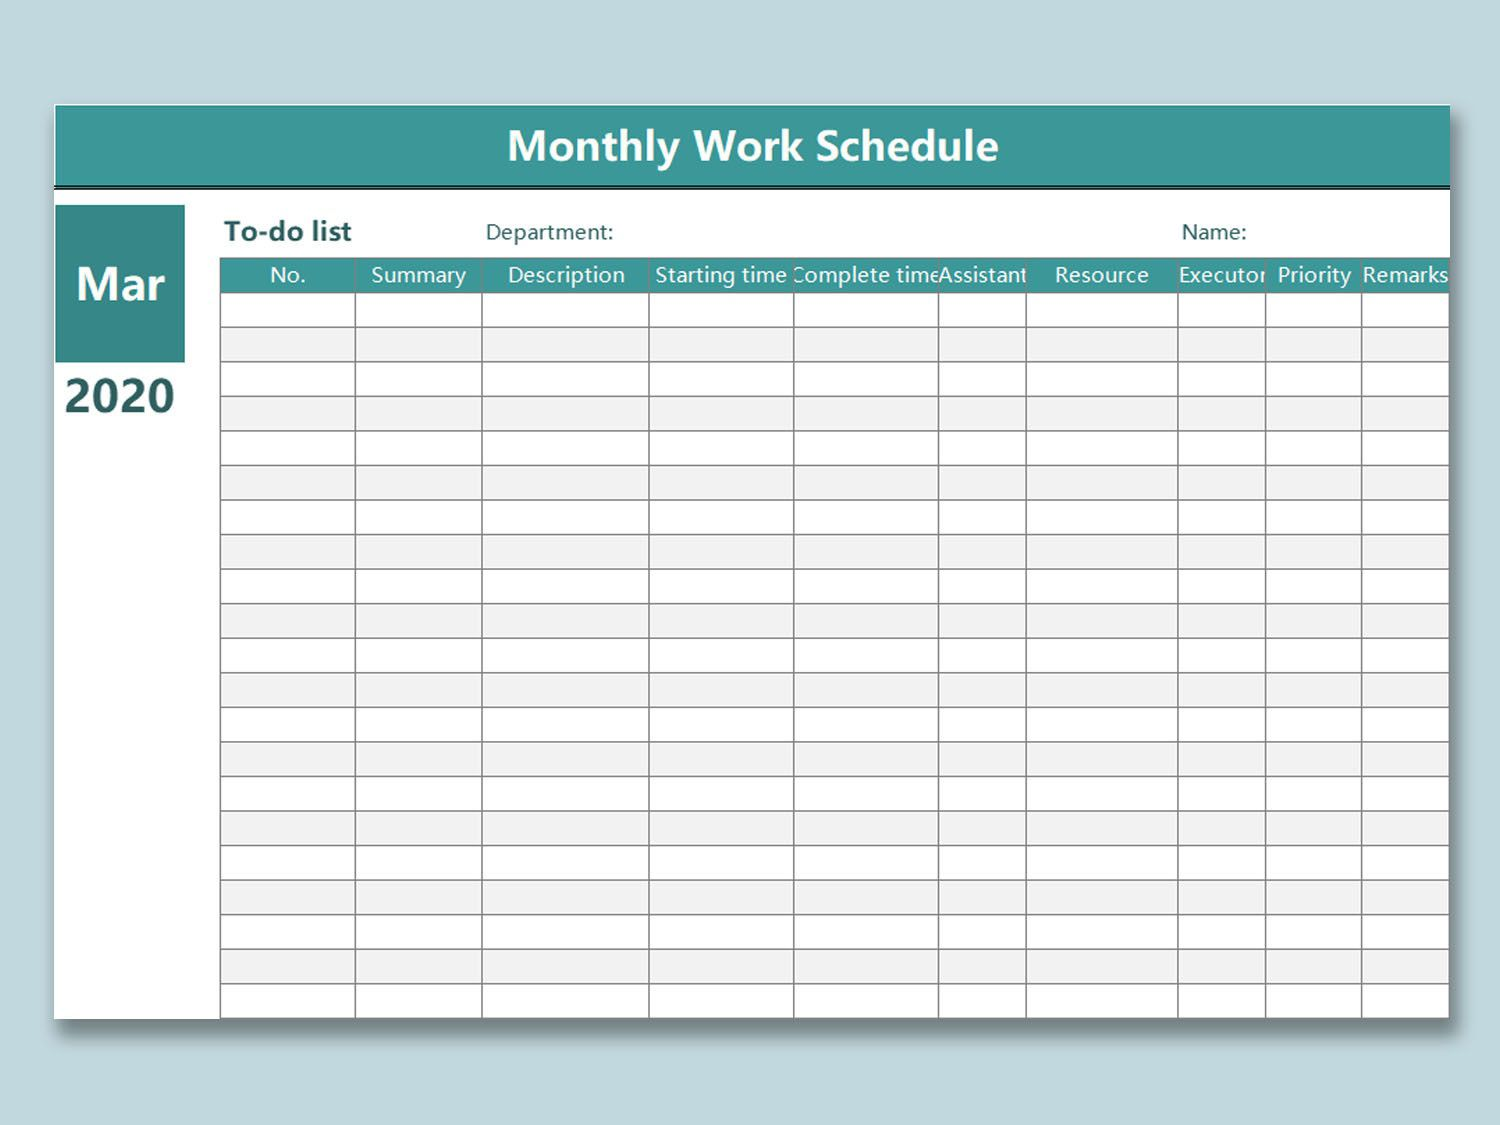 004 Shocking Free Employee Scheduling Template High Resolution  Templates Weekly Work Schedule Printable LunchFull